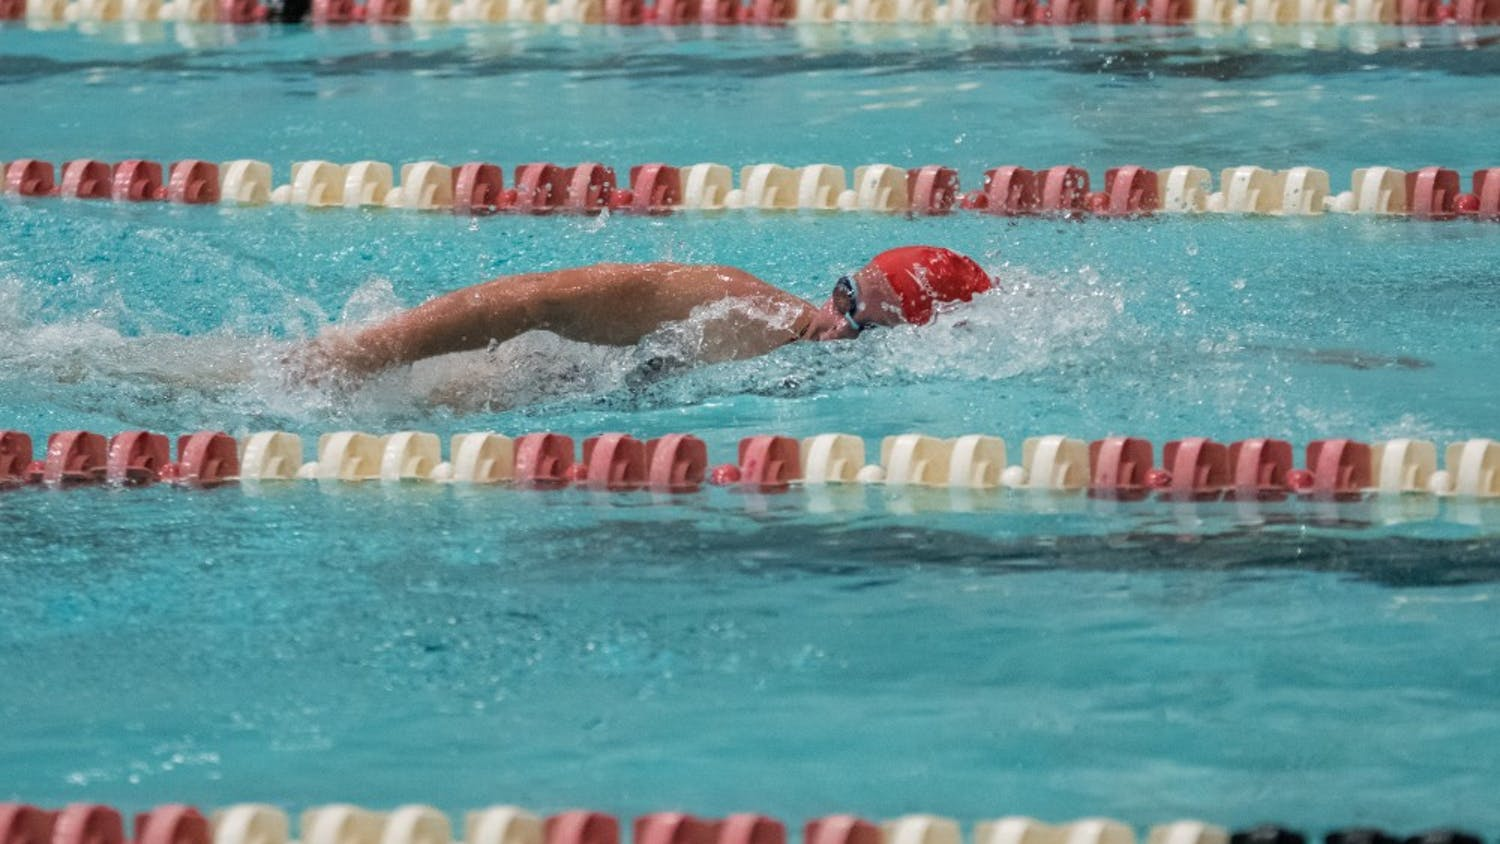 Swim writer Kelly Ward and 2016 Olympian Matt Hutchins preview this week's women's Big Ten Swimming and Diving championships.